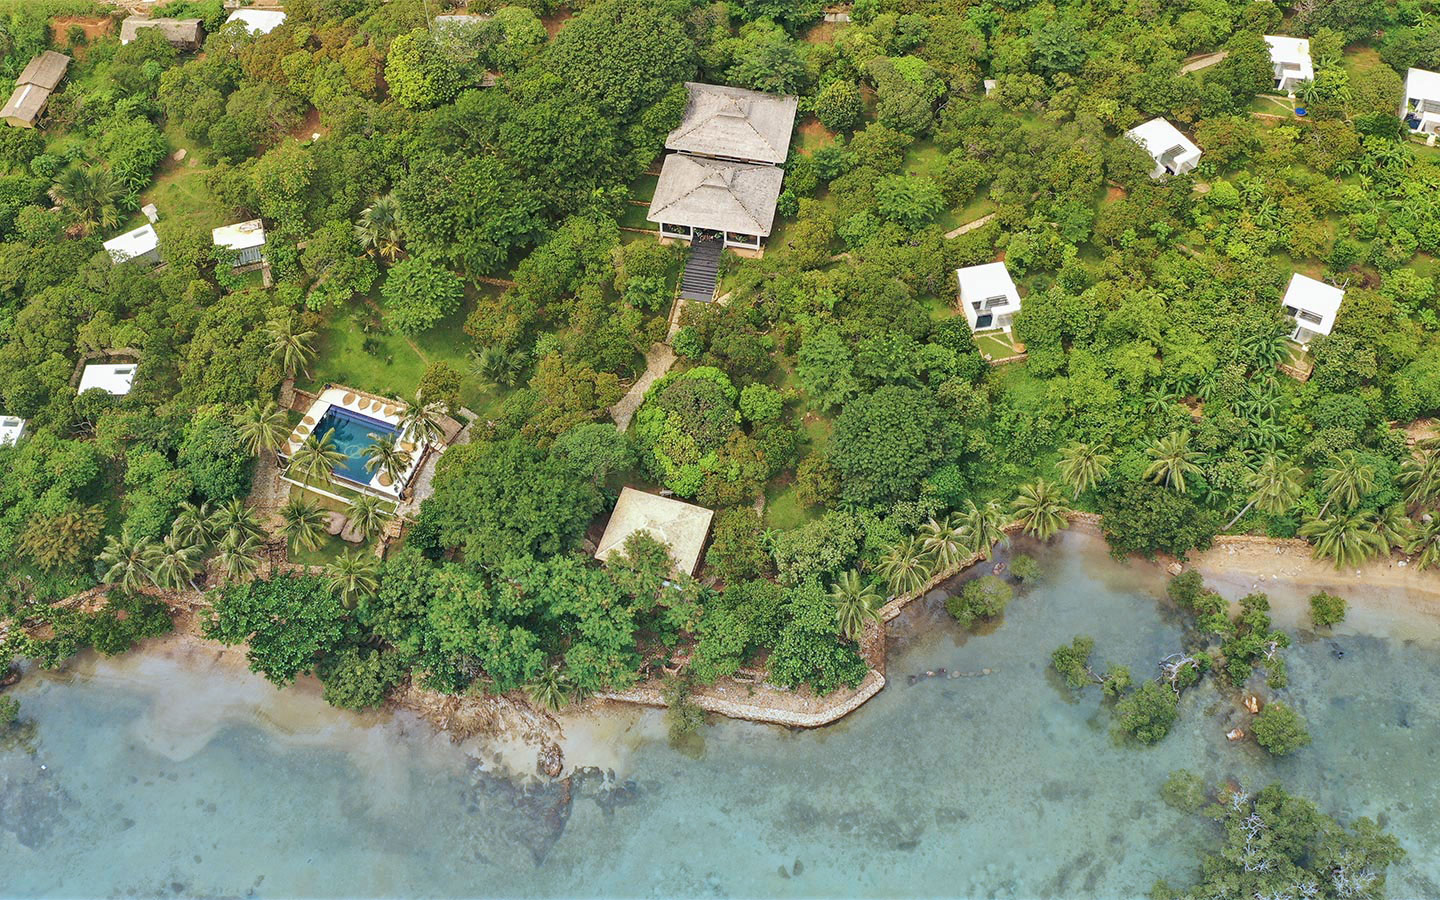 aerial view of The Dream Resort coastline